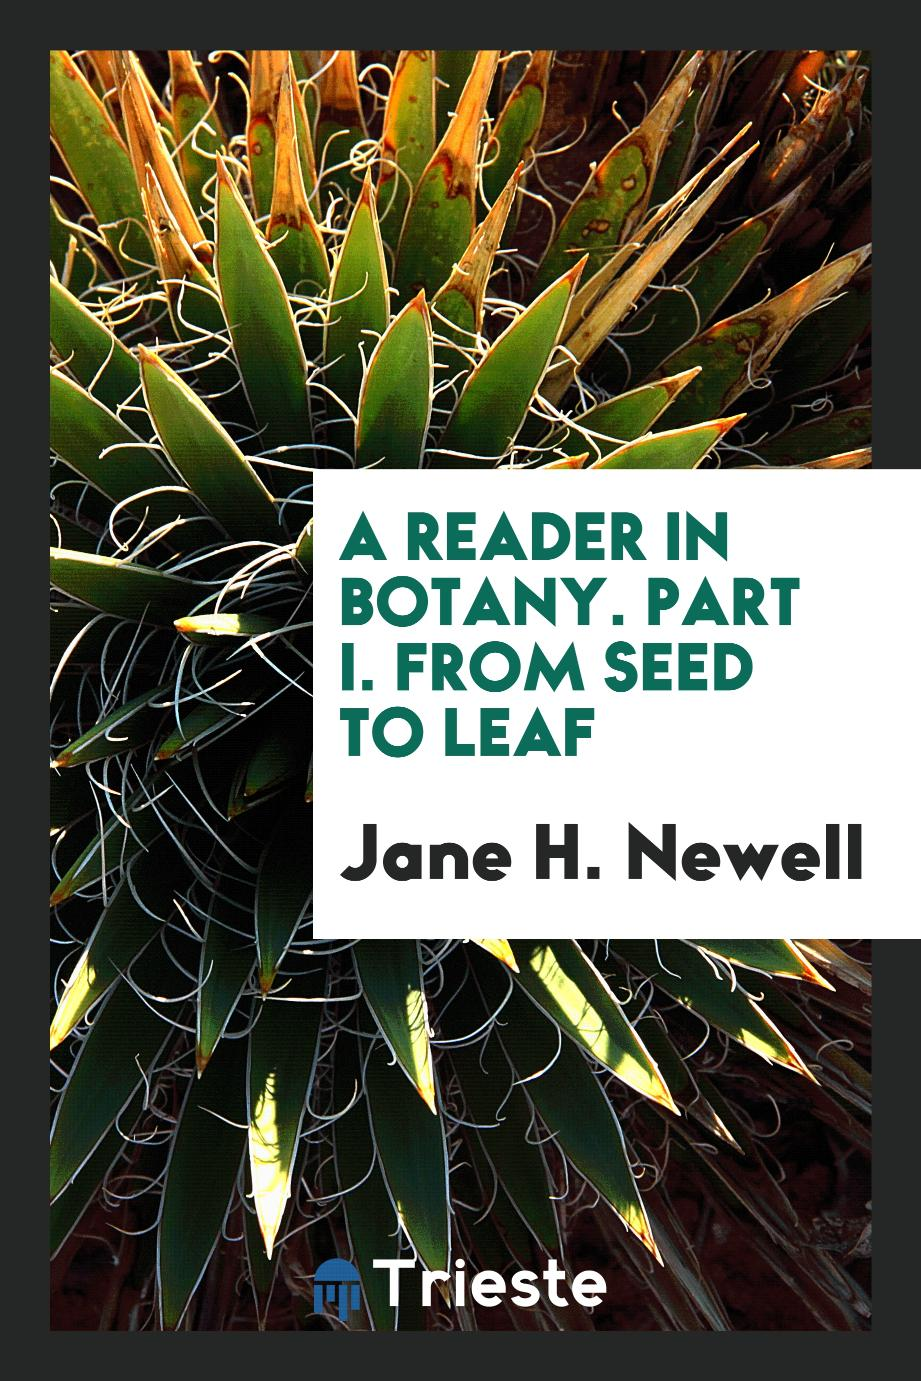 A Reader in Botany. Part I. From Seed to Leaf